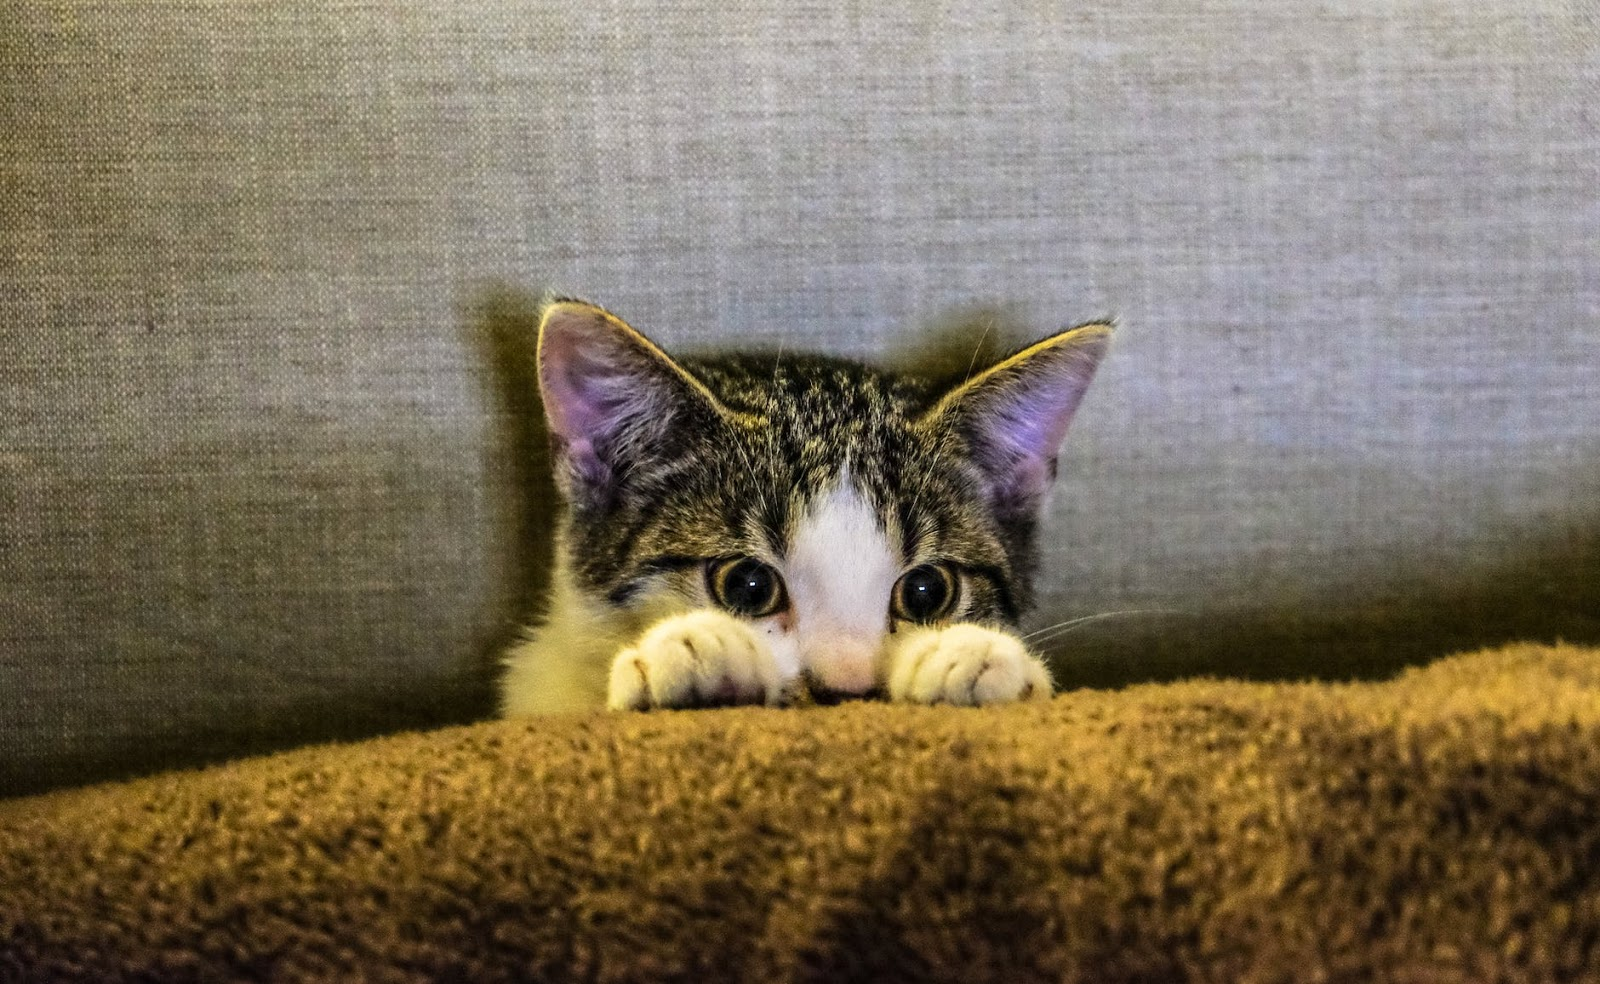 a cat hiding peaking out from behind a cushion